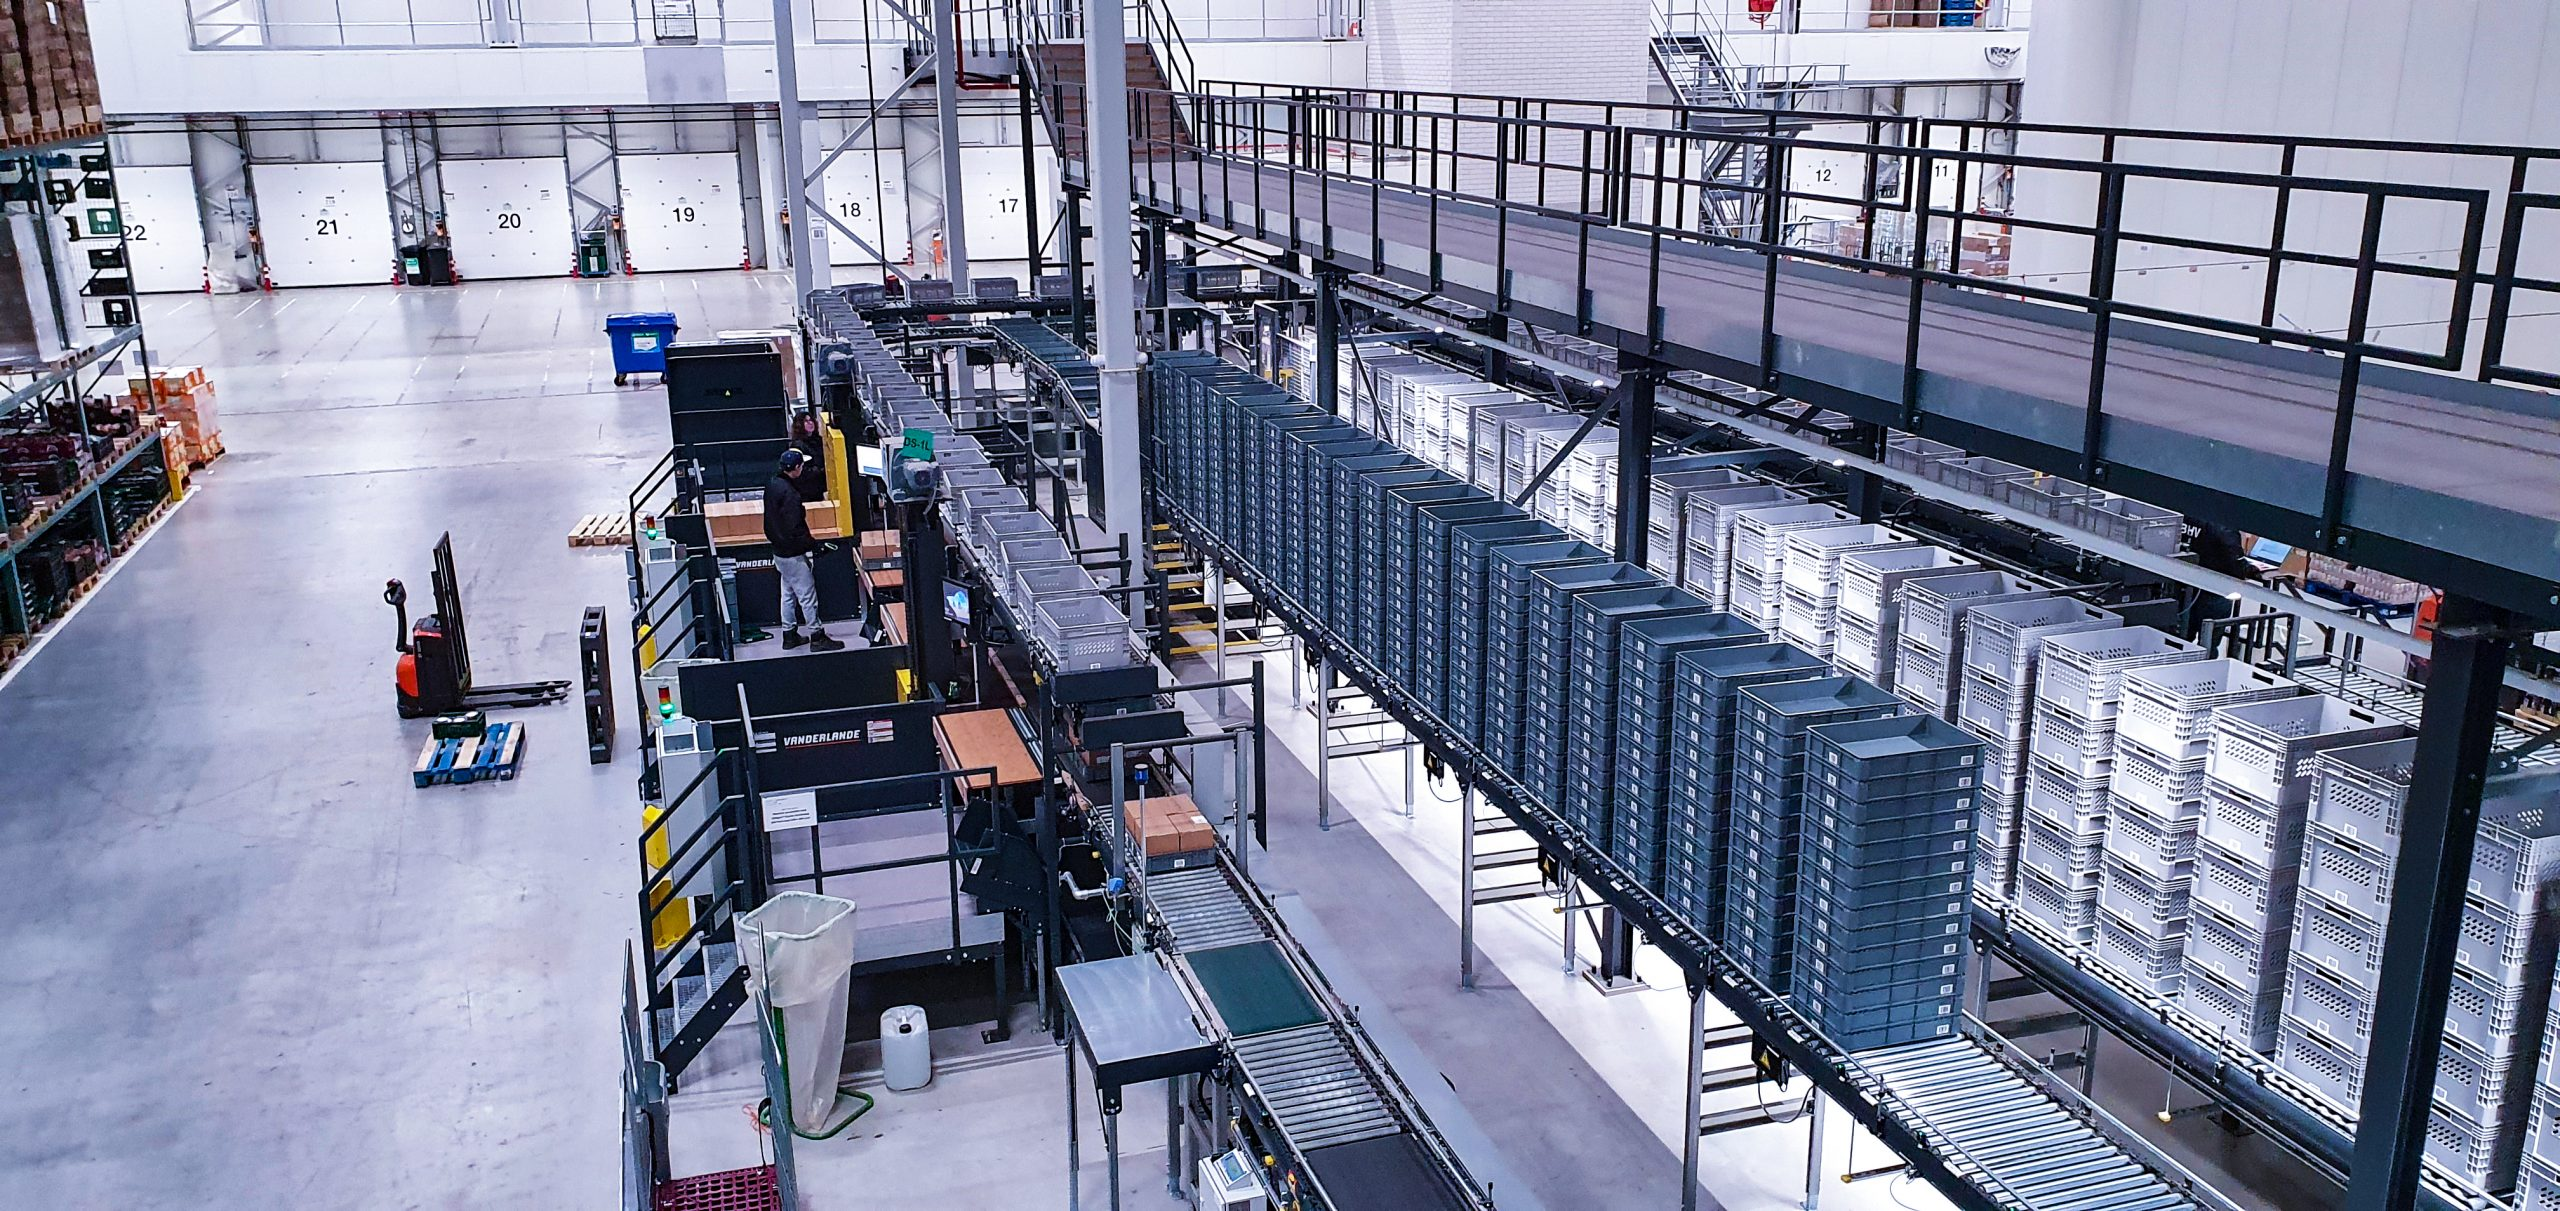 Udea new automated distribution center uses Astro WMS to increase picking effiency